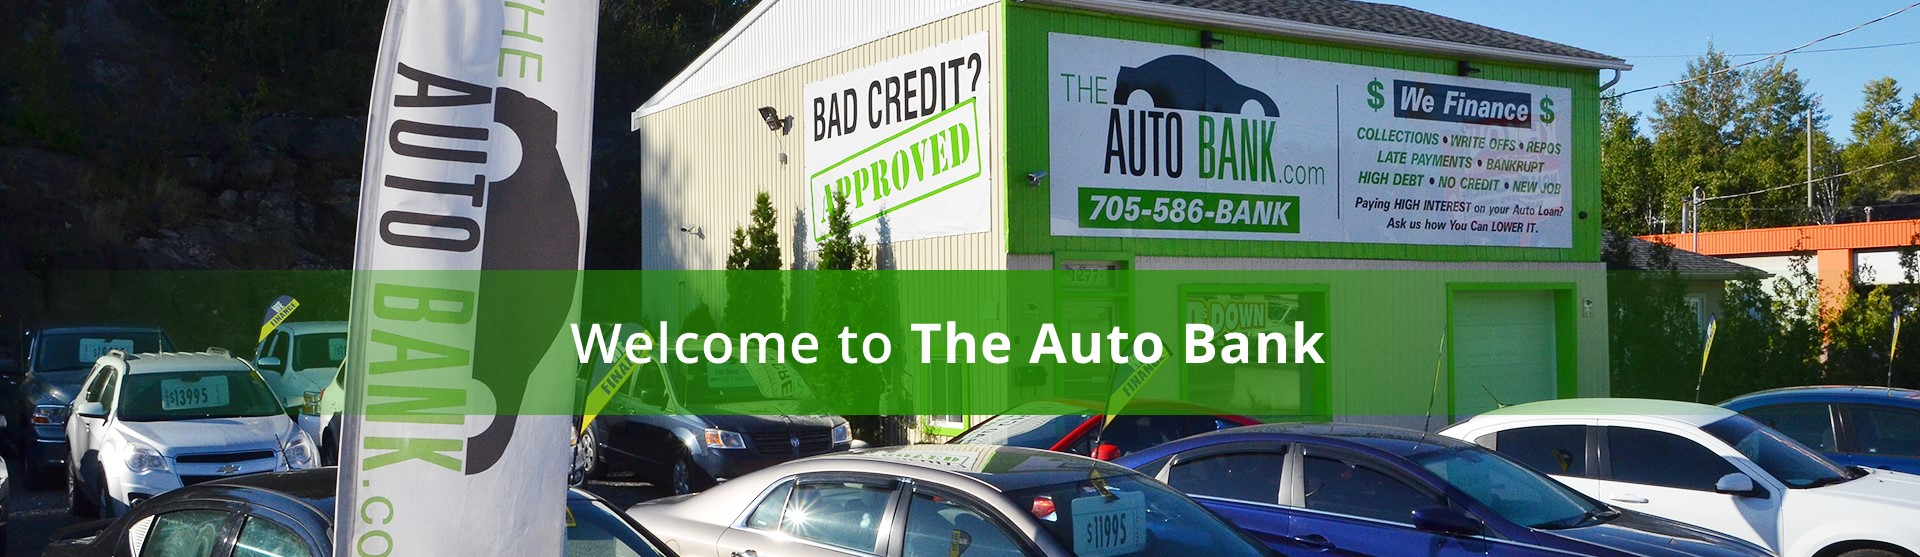 Sudbury Car Dealerships >> The Auto Bank Used Car Dealership Sudbury Ontario